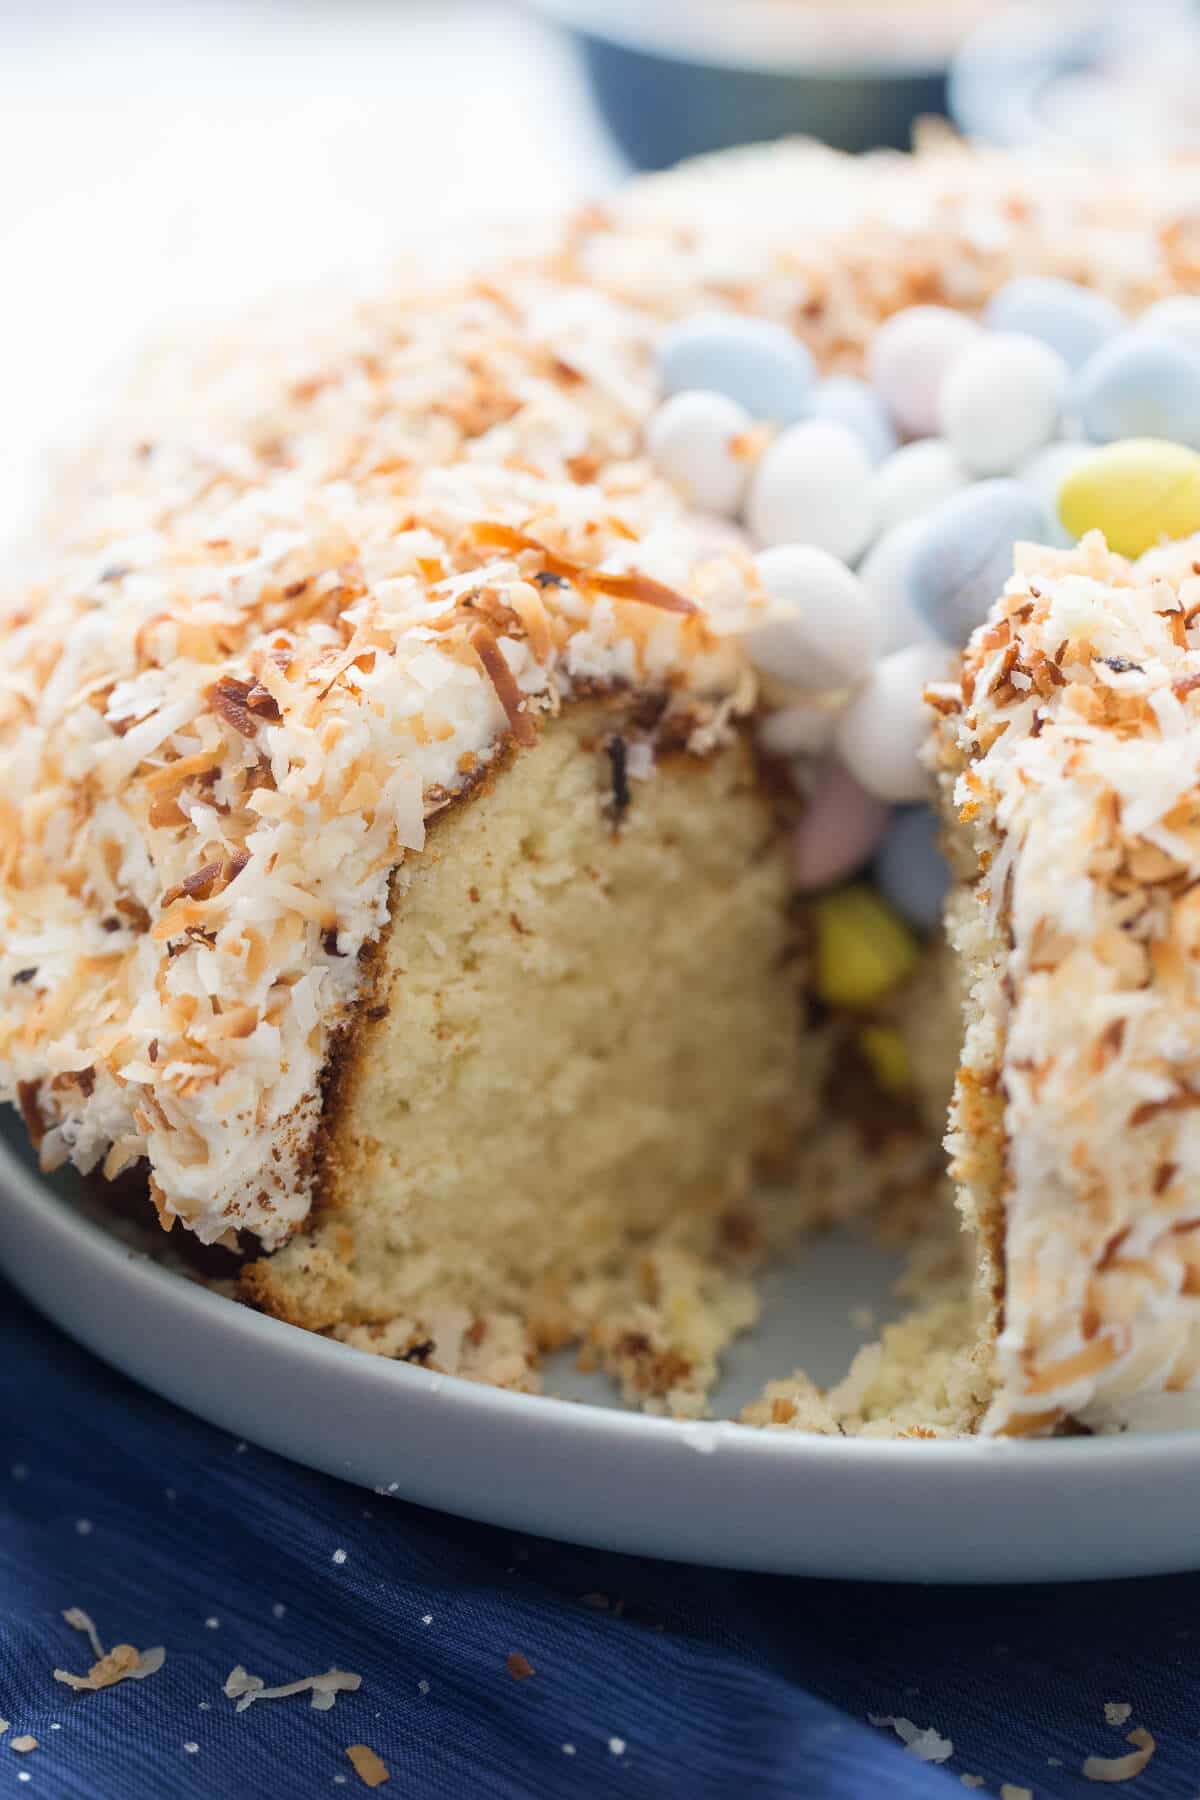 This is one impressive Easter lemon bundt cake! Toasted coconut is arranged with chocolate eggs to look just like a birds nest!